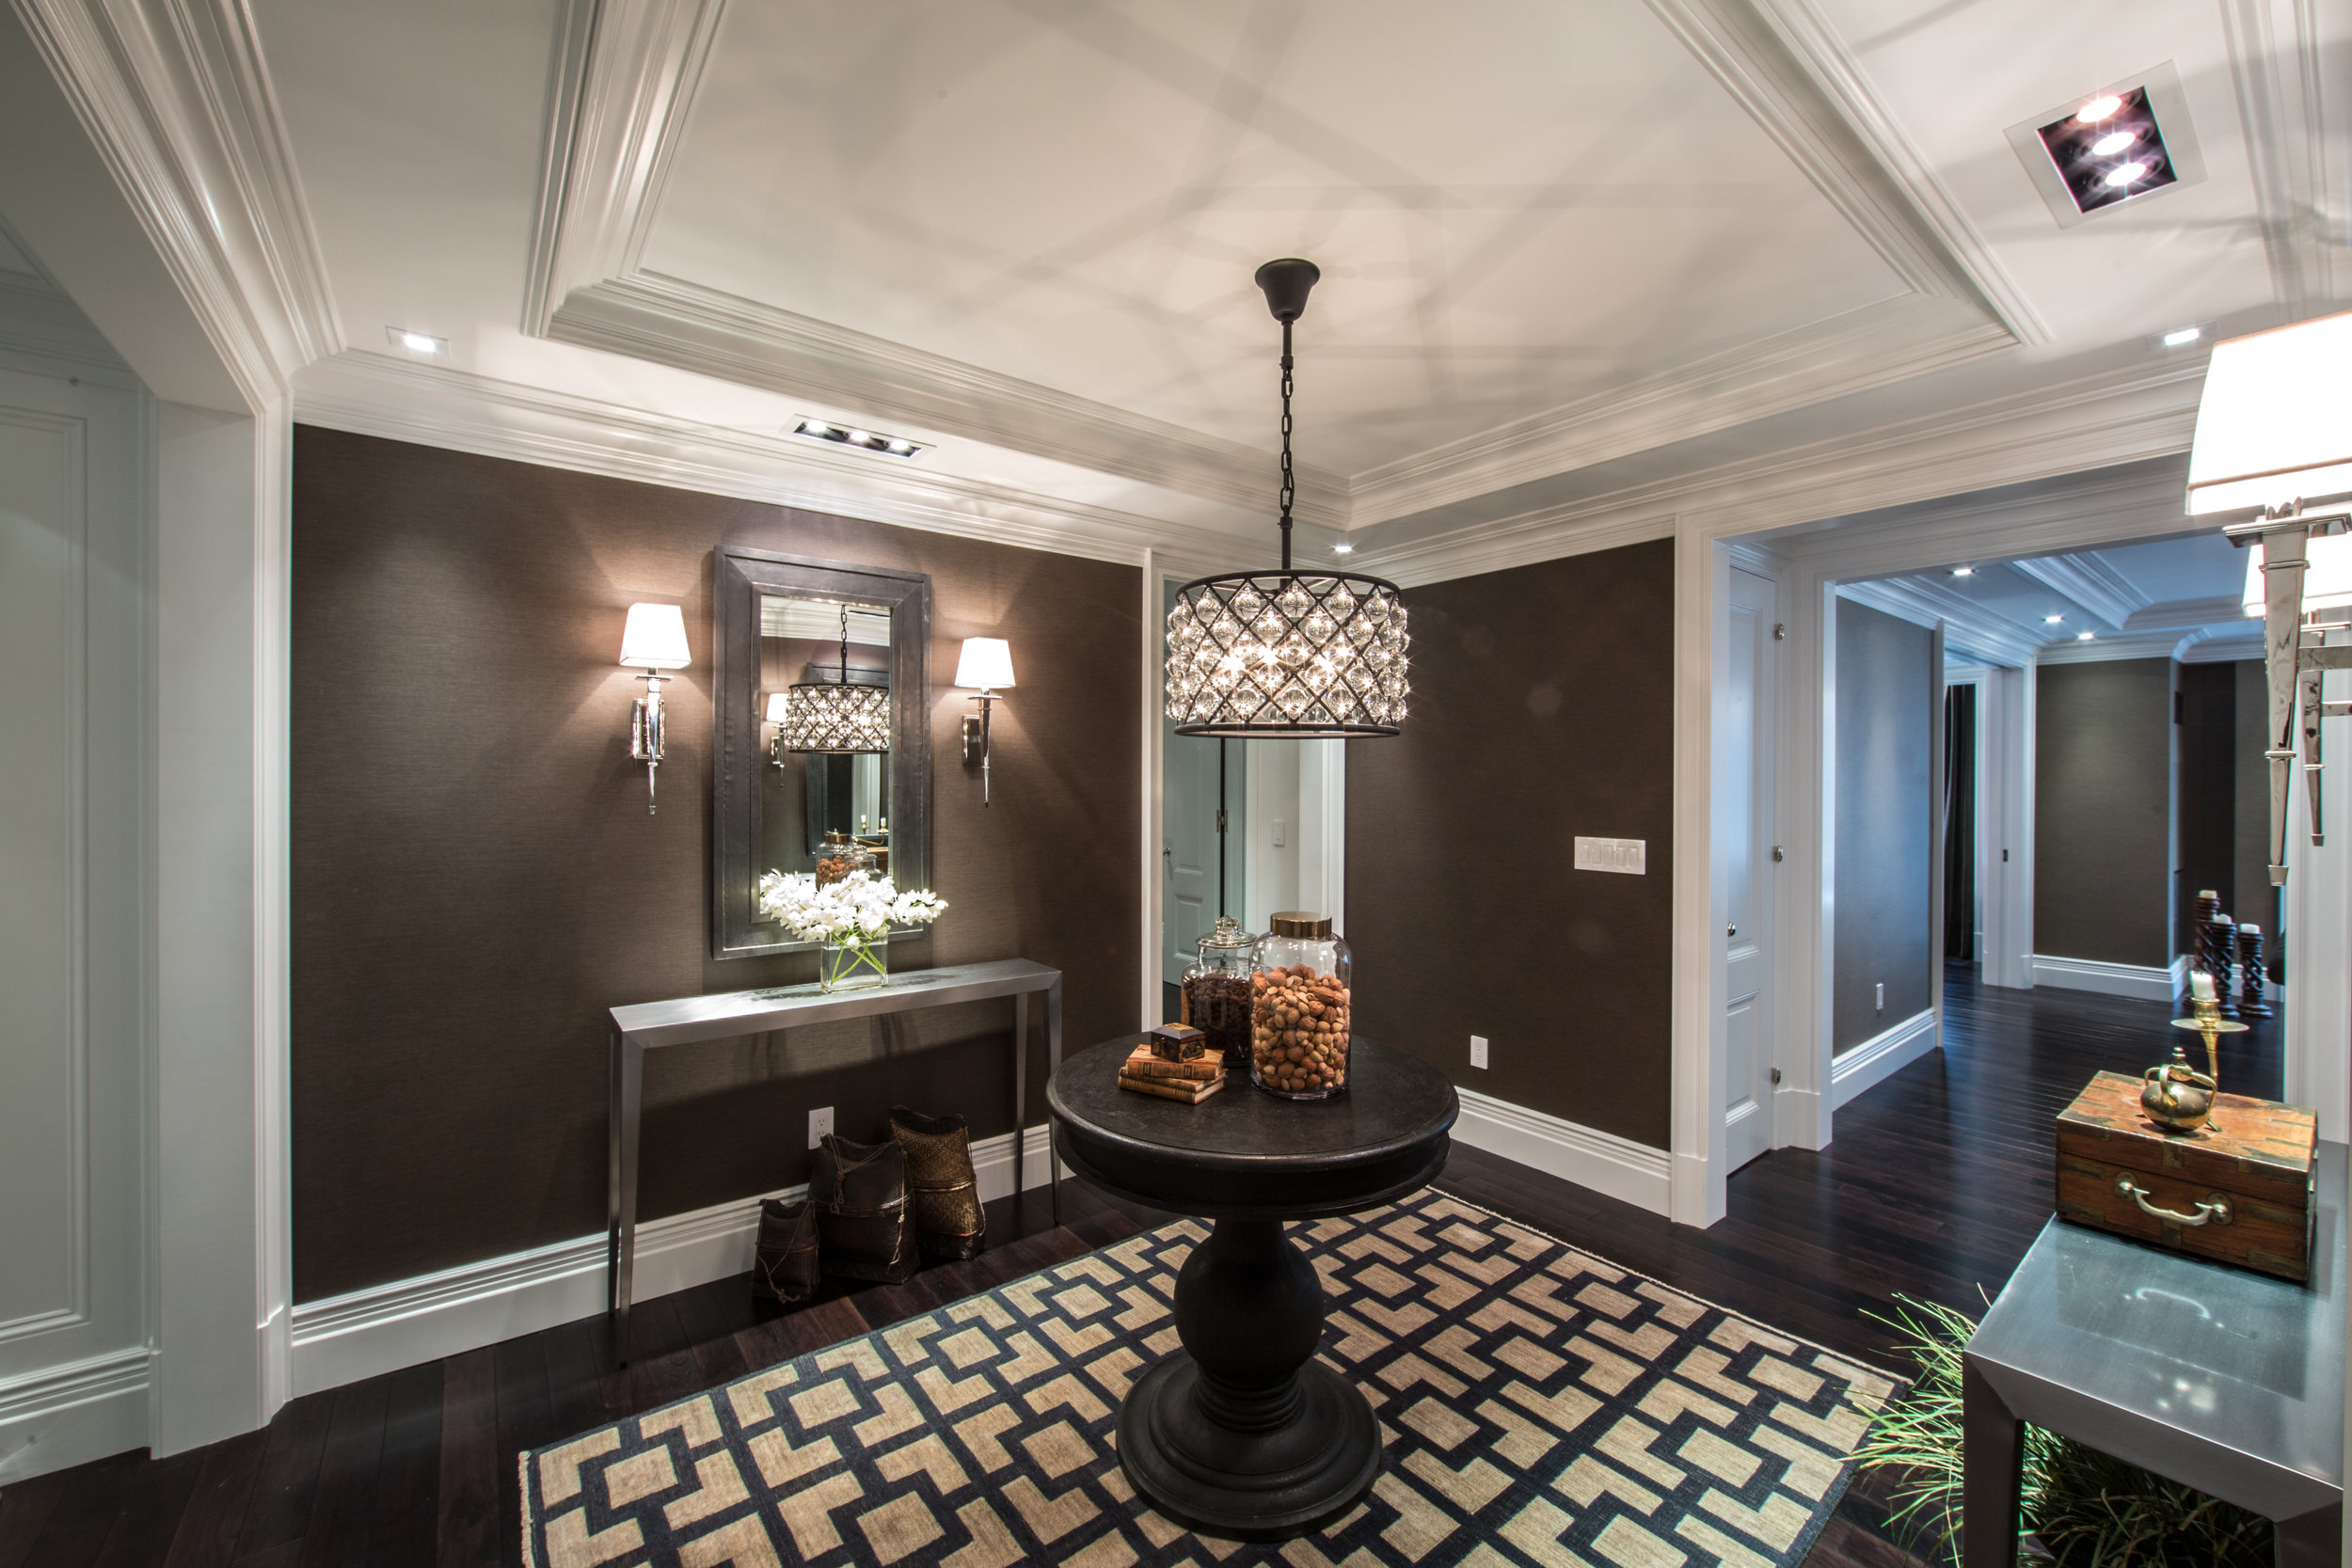 A WEST SIDE RESIDENCE - PART I